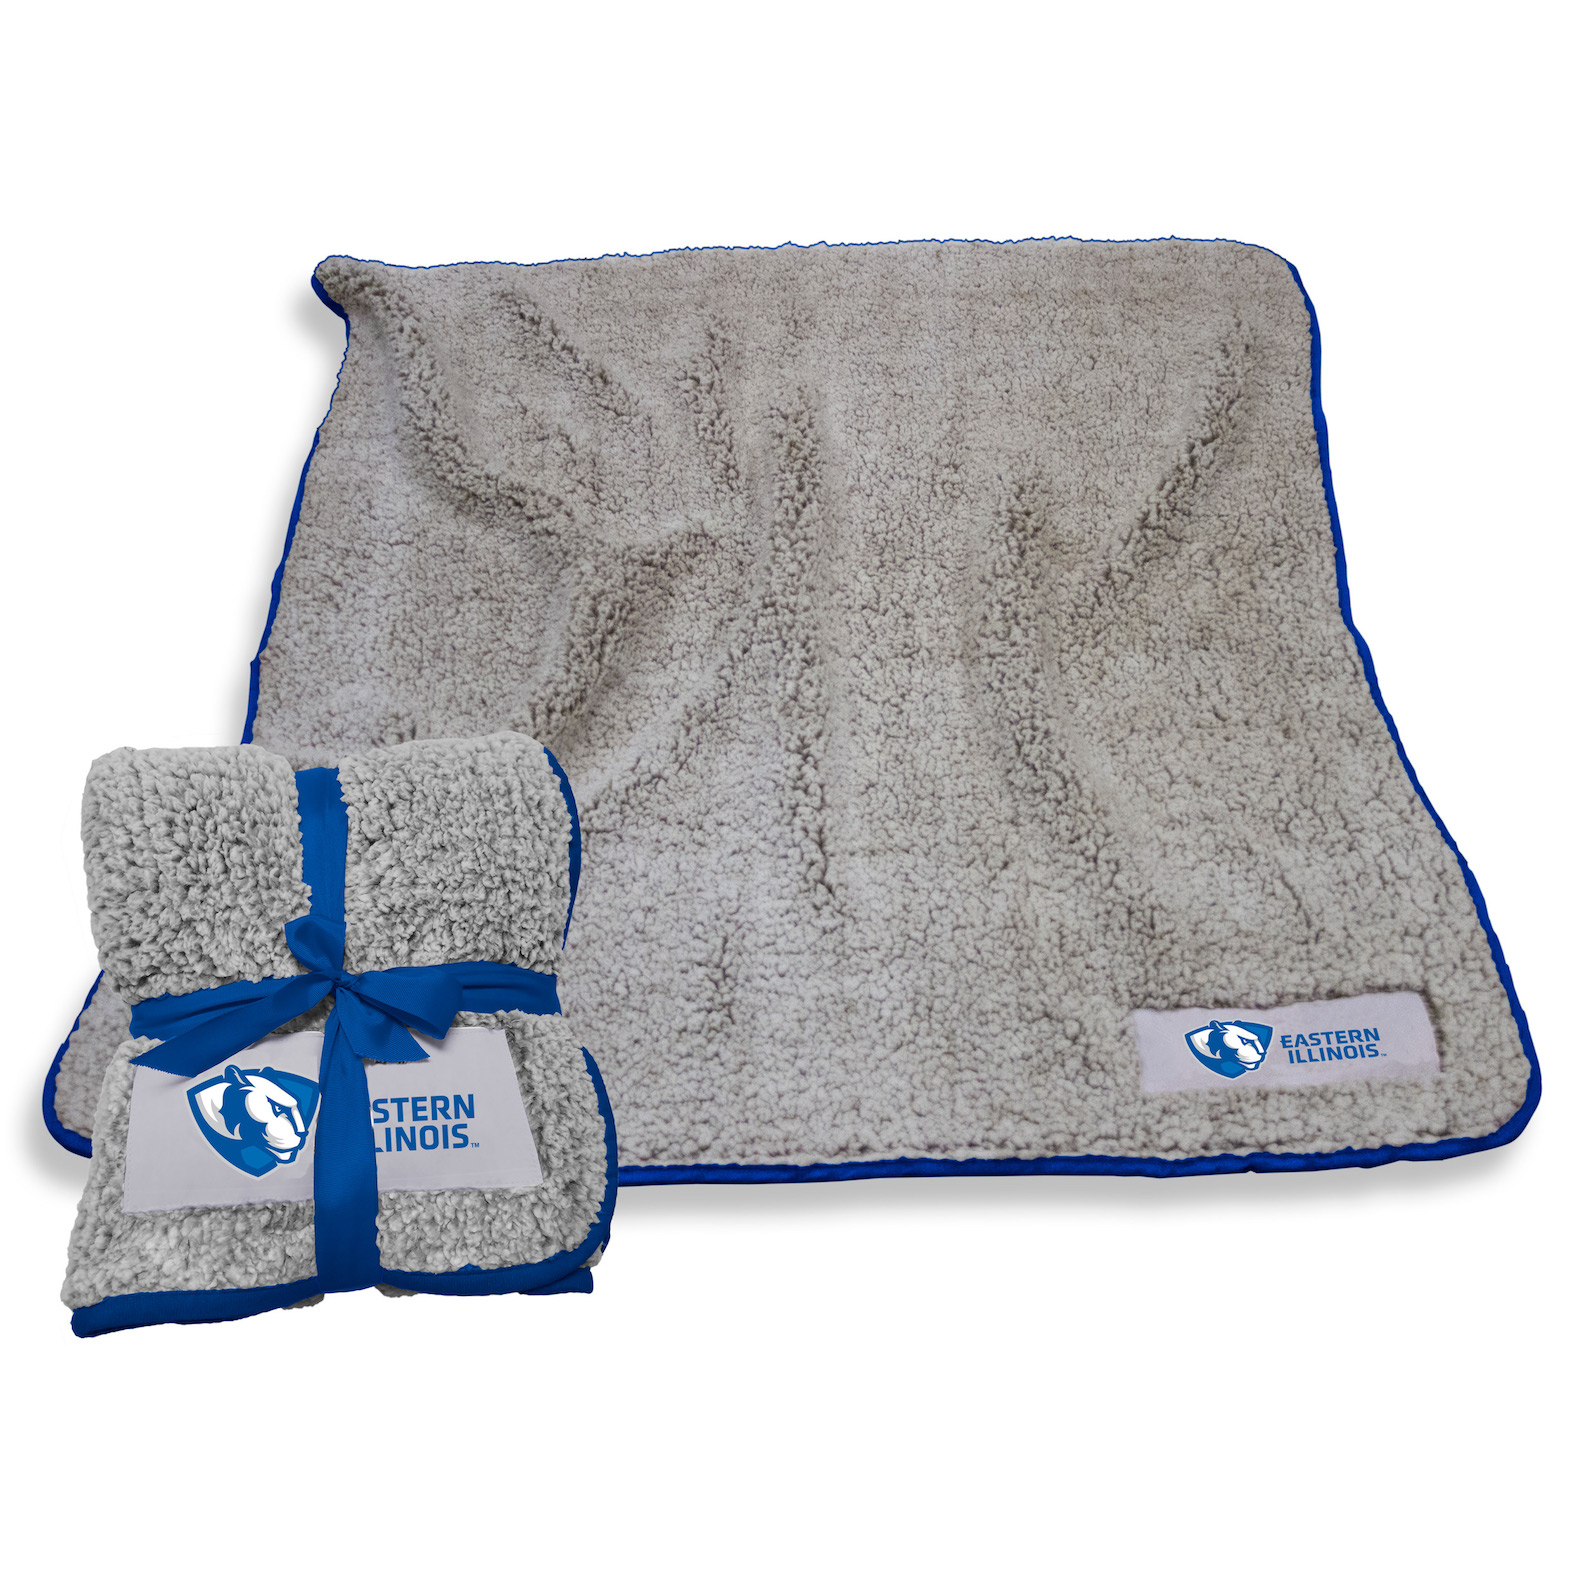 Image For EASTERN ILLINOIS PANTHER LOGO SHERPA BLANKET